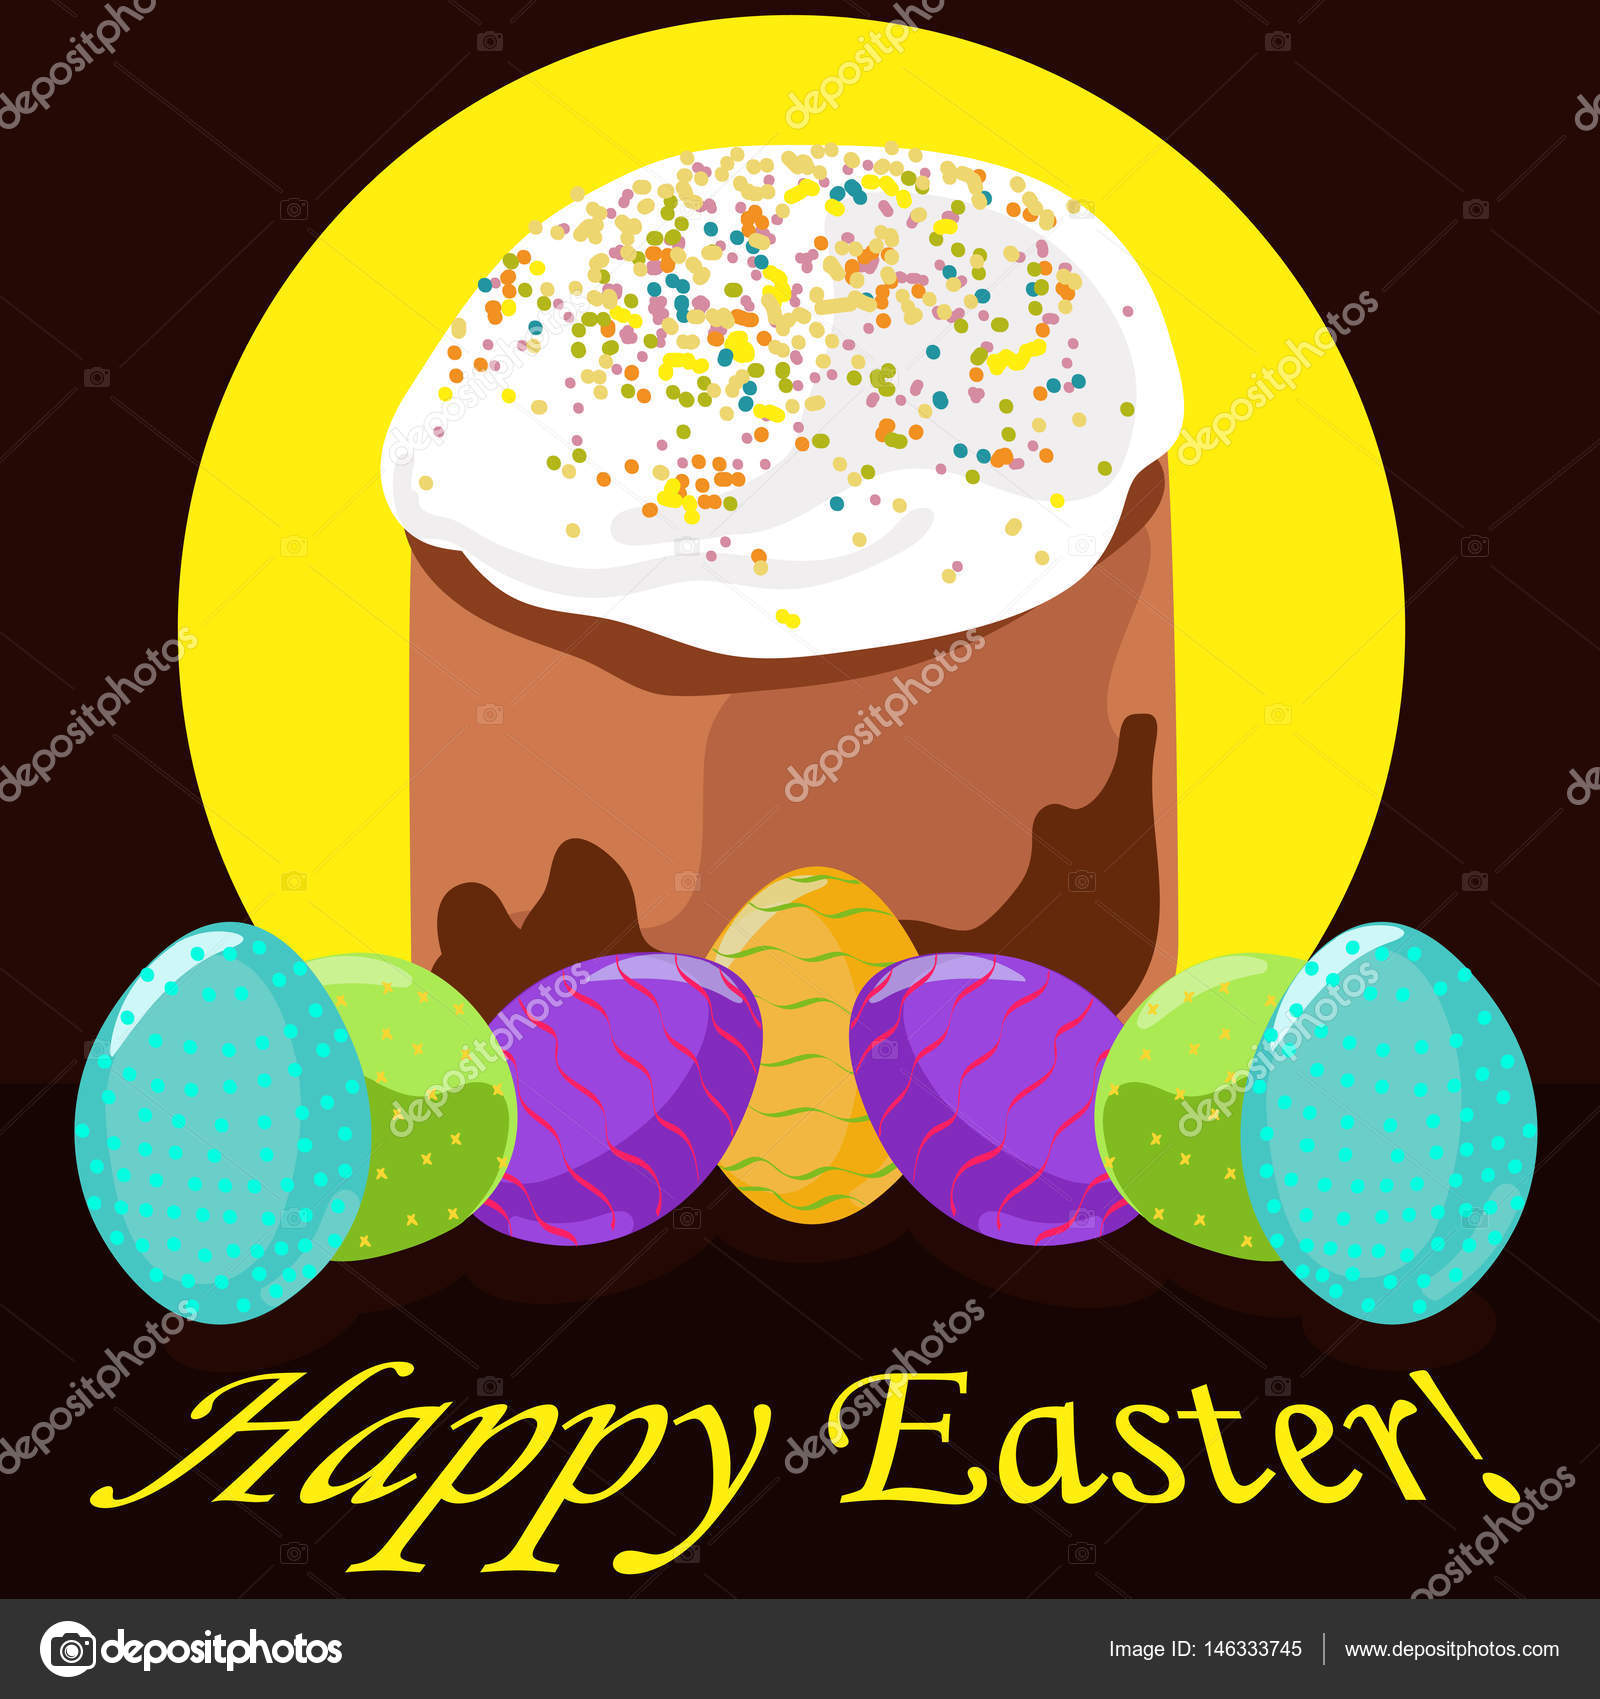 Print Greeting Card With Easter Cake Eggs And The Words Happy